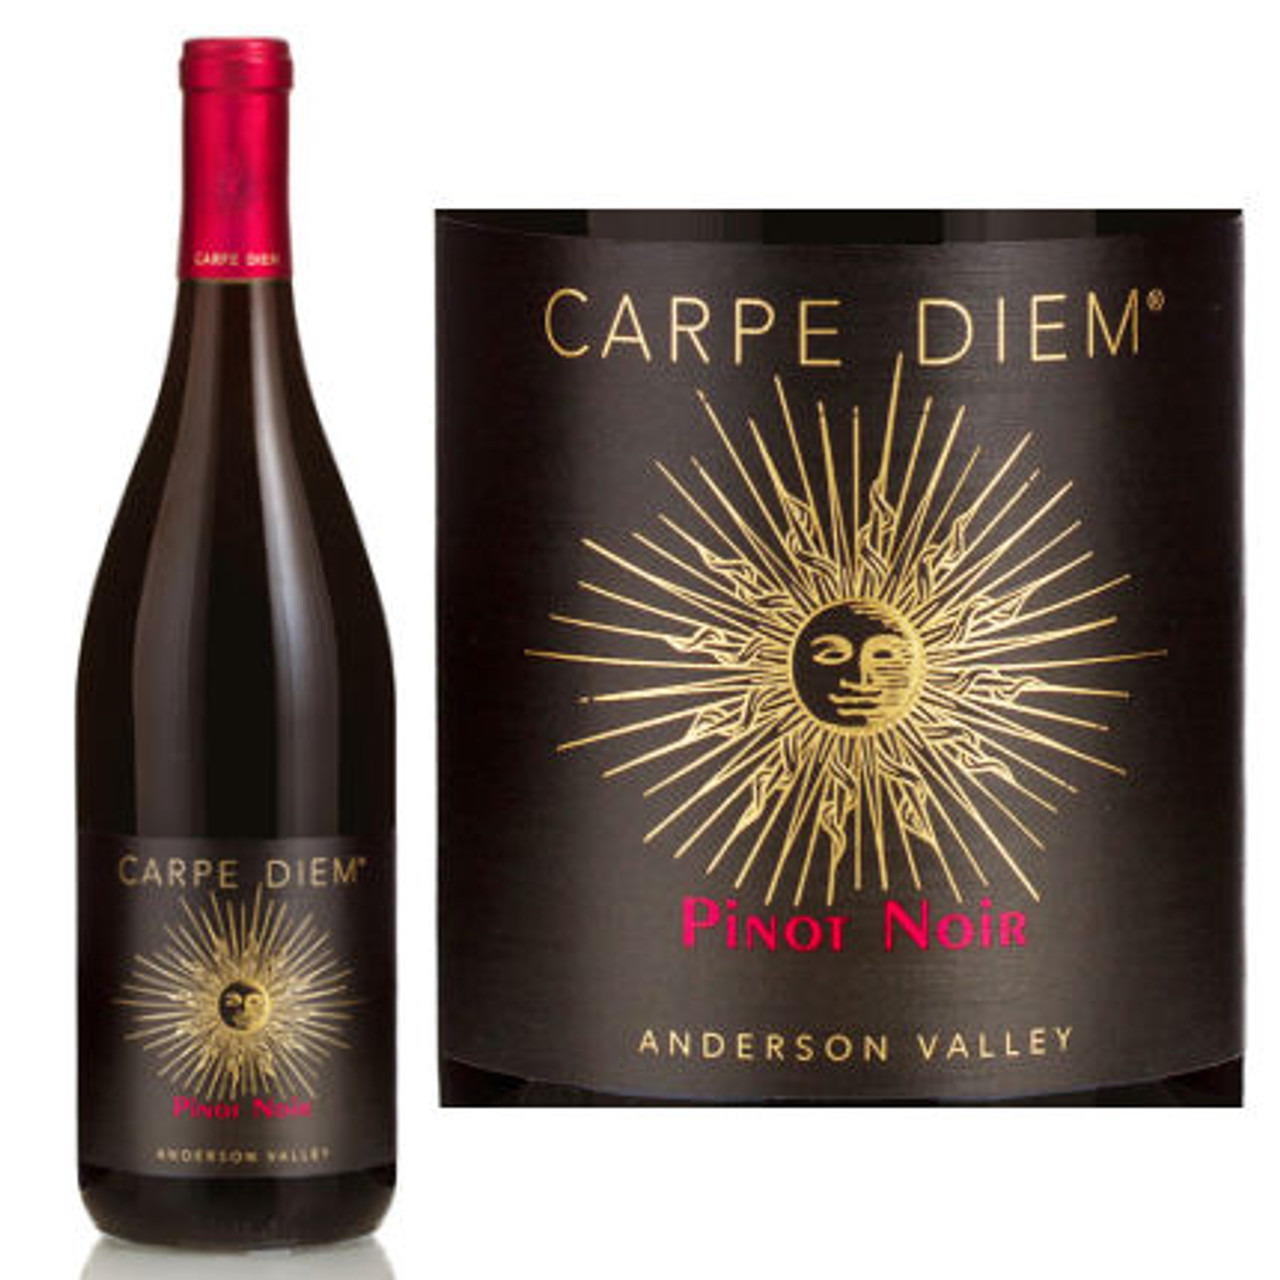 Carpe Diem Anderson Valley Pinot Noir 2014 Rated 91WE